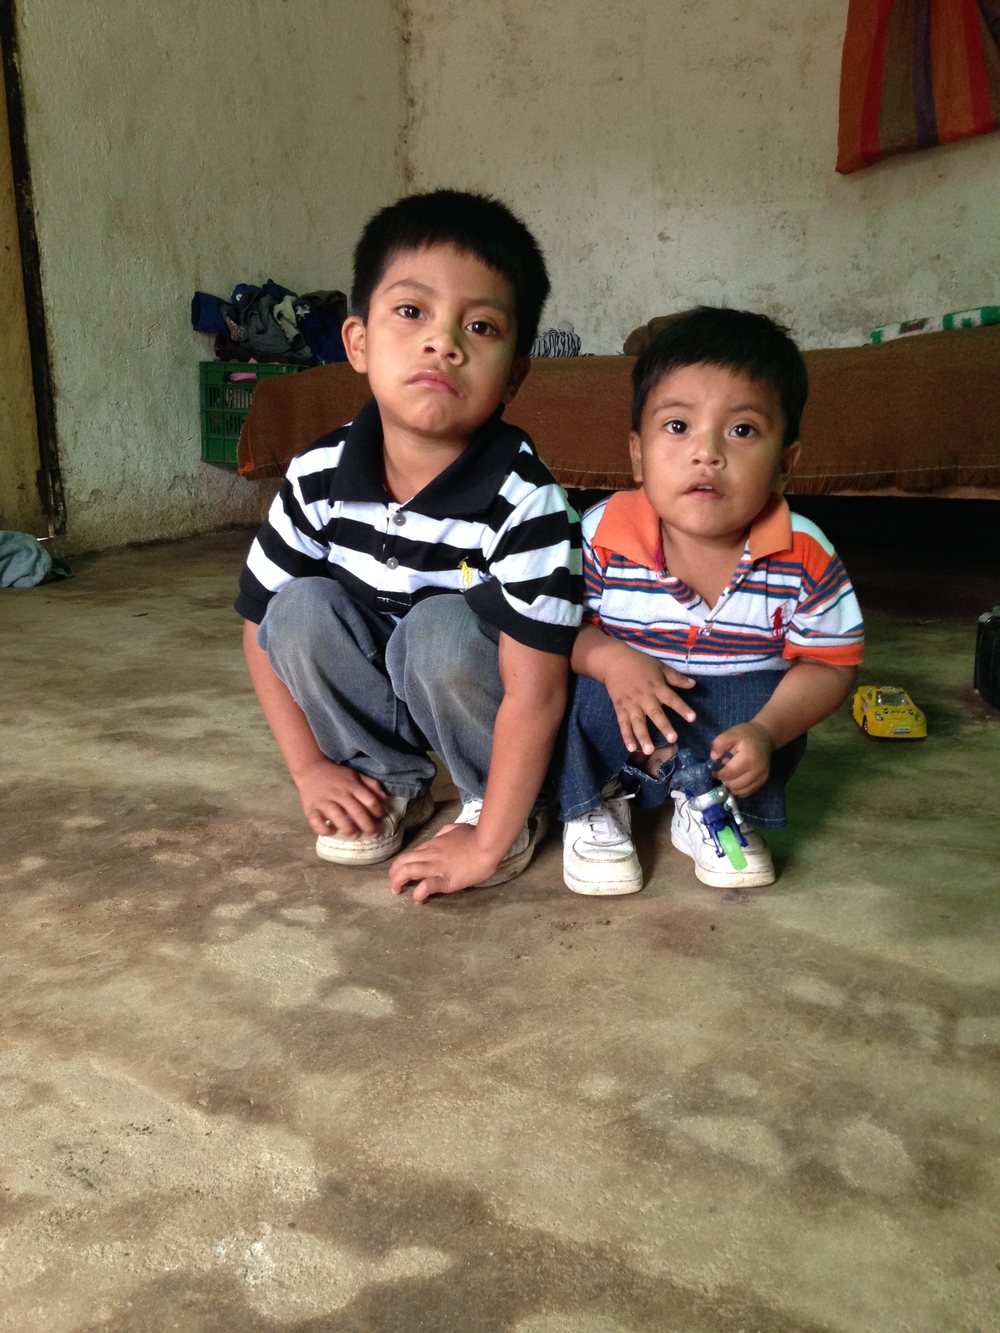 Mardoqueo and Benjamin who were kidnapped with their mother Micaela Saquic.